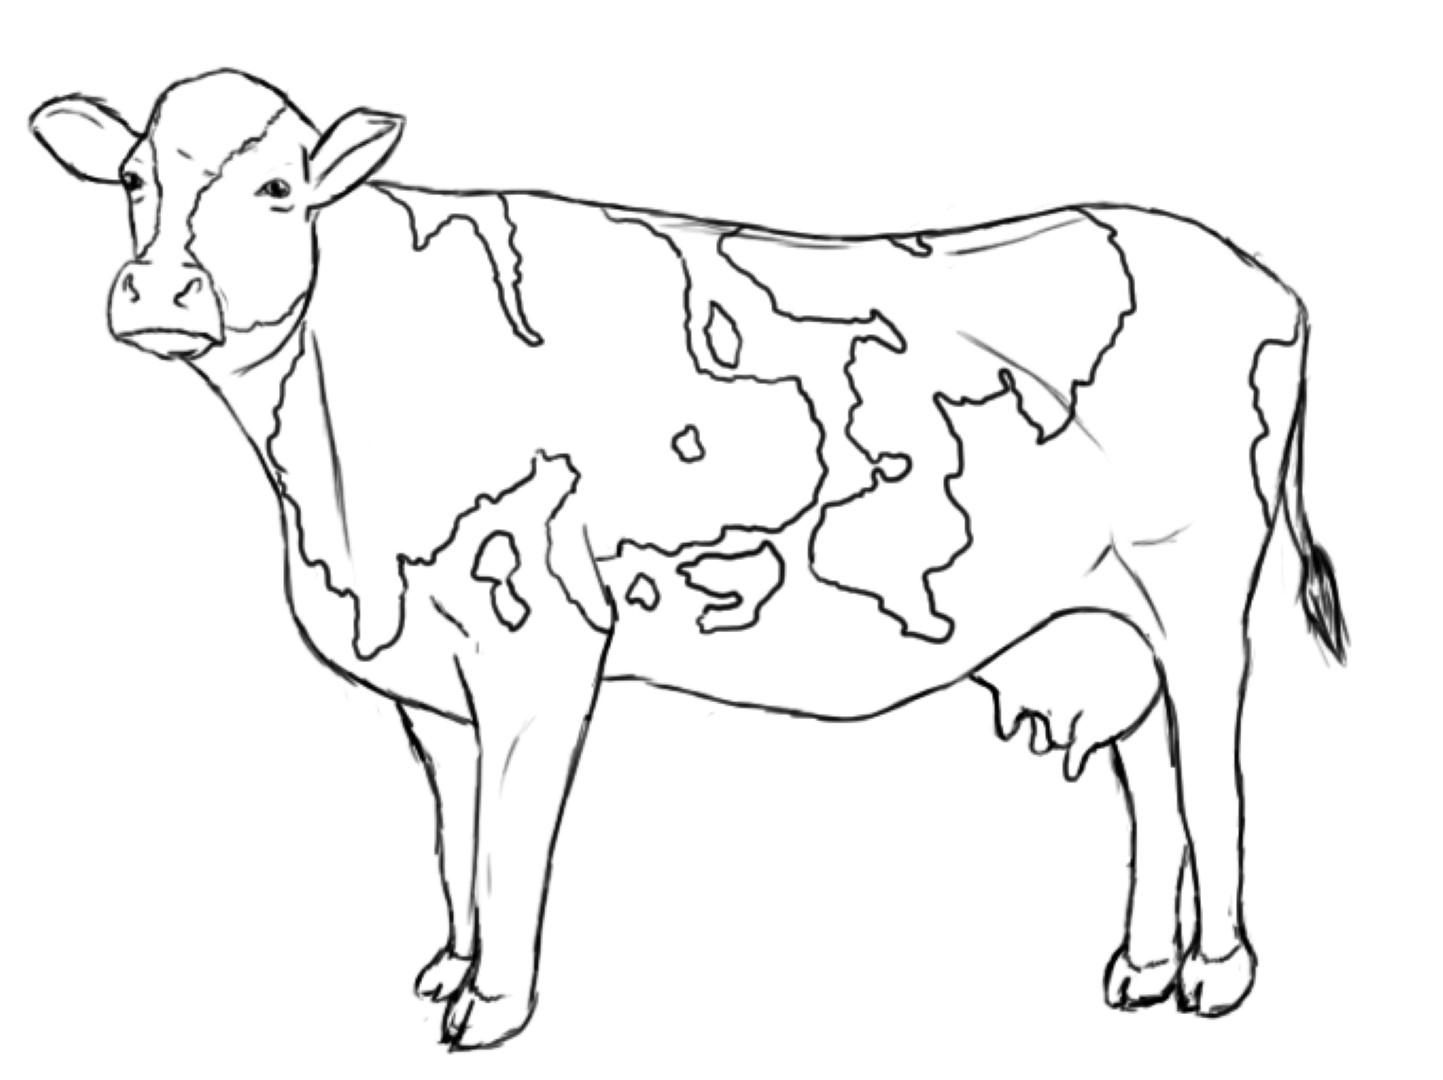 Cow Cartoon Drawing At Getdrawings